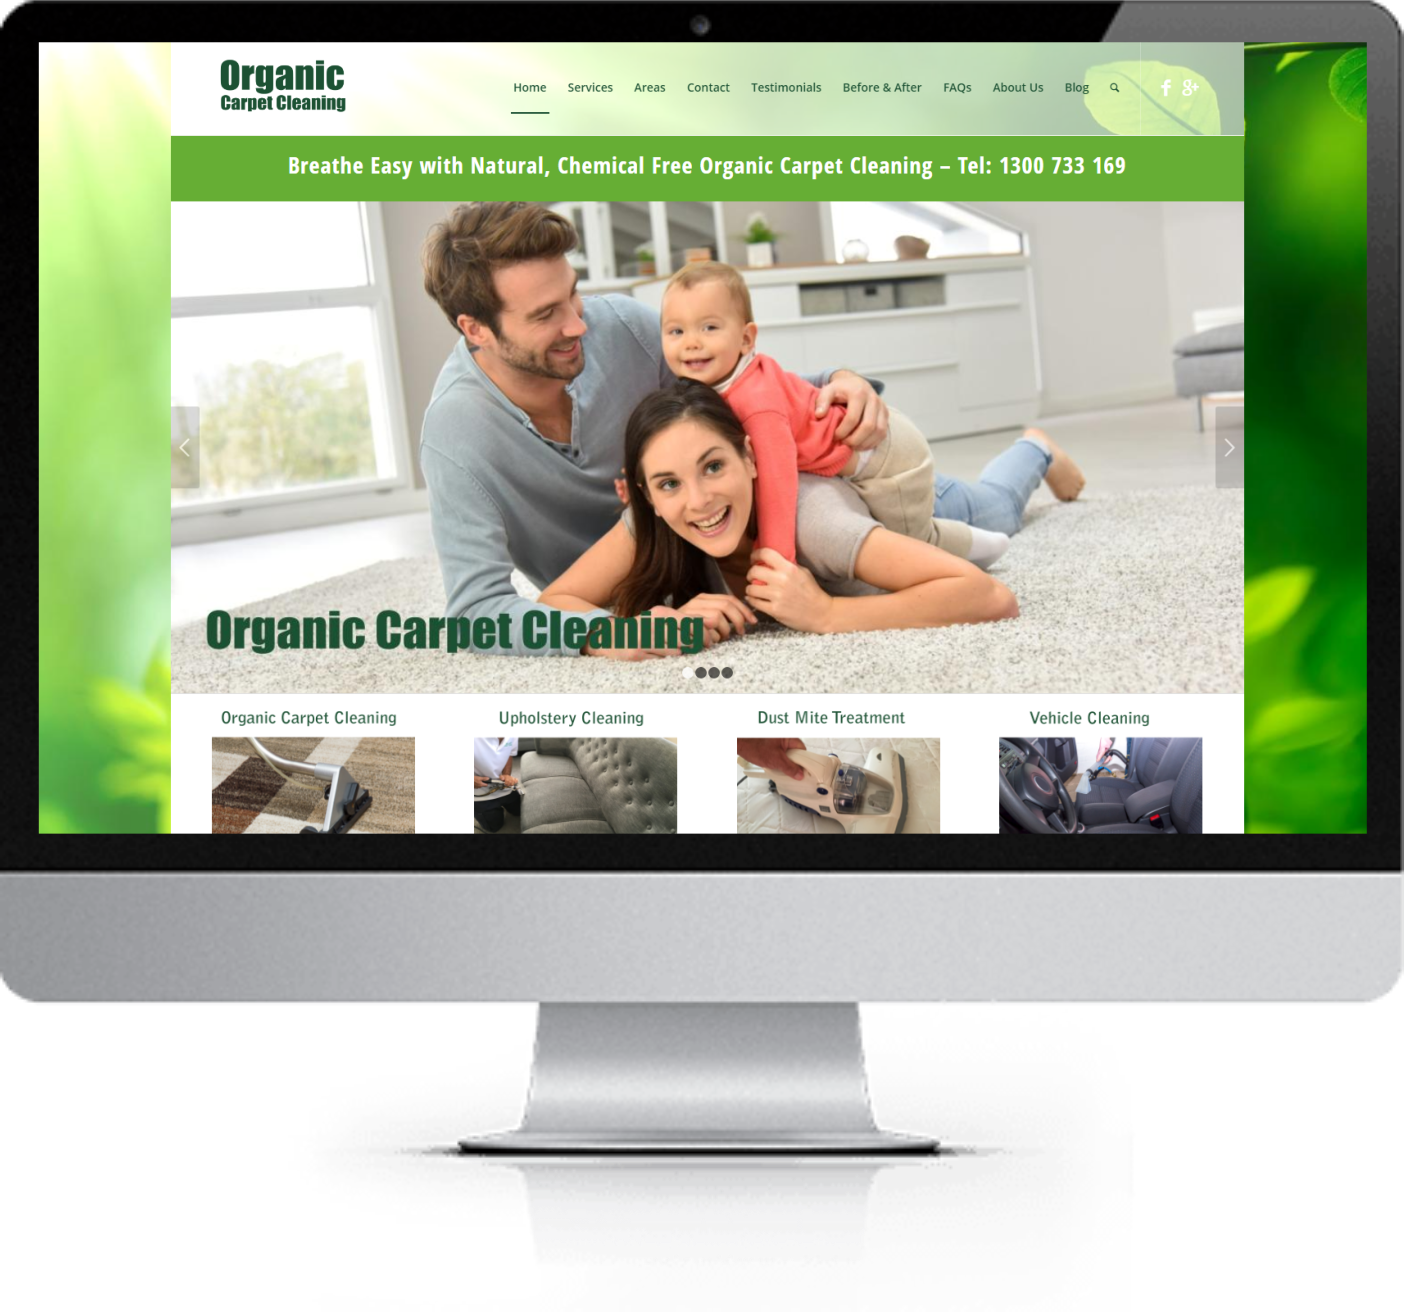 Website Redesign - Organic Carpet Cleaning - After